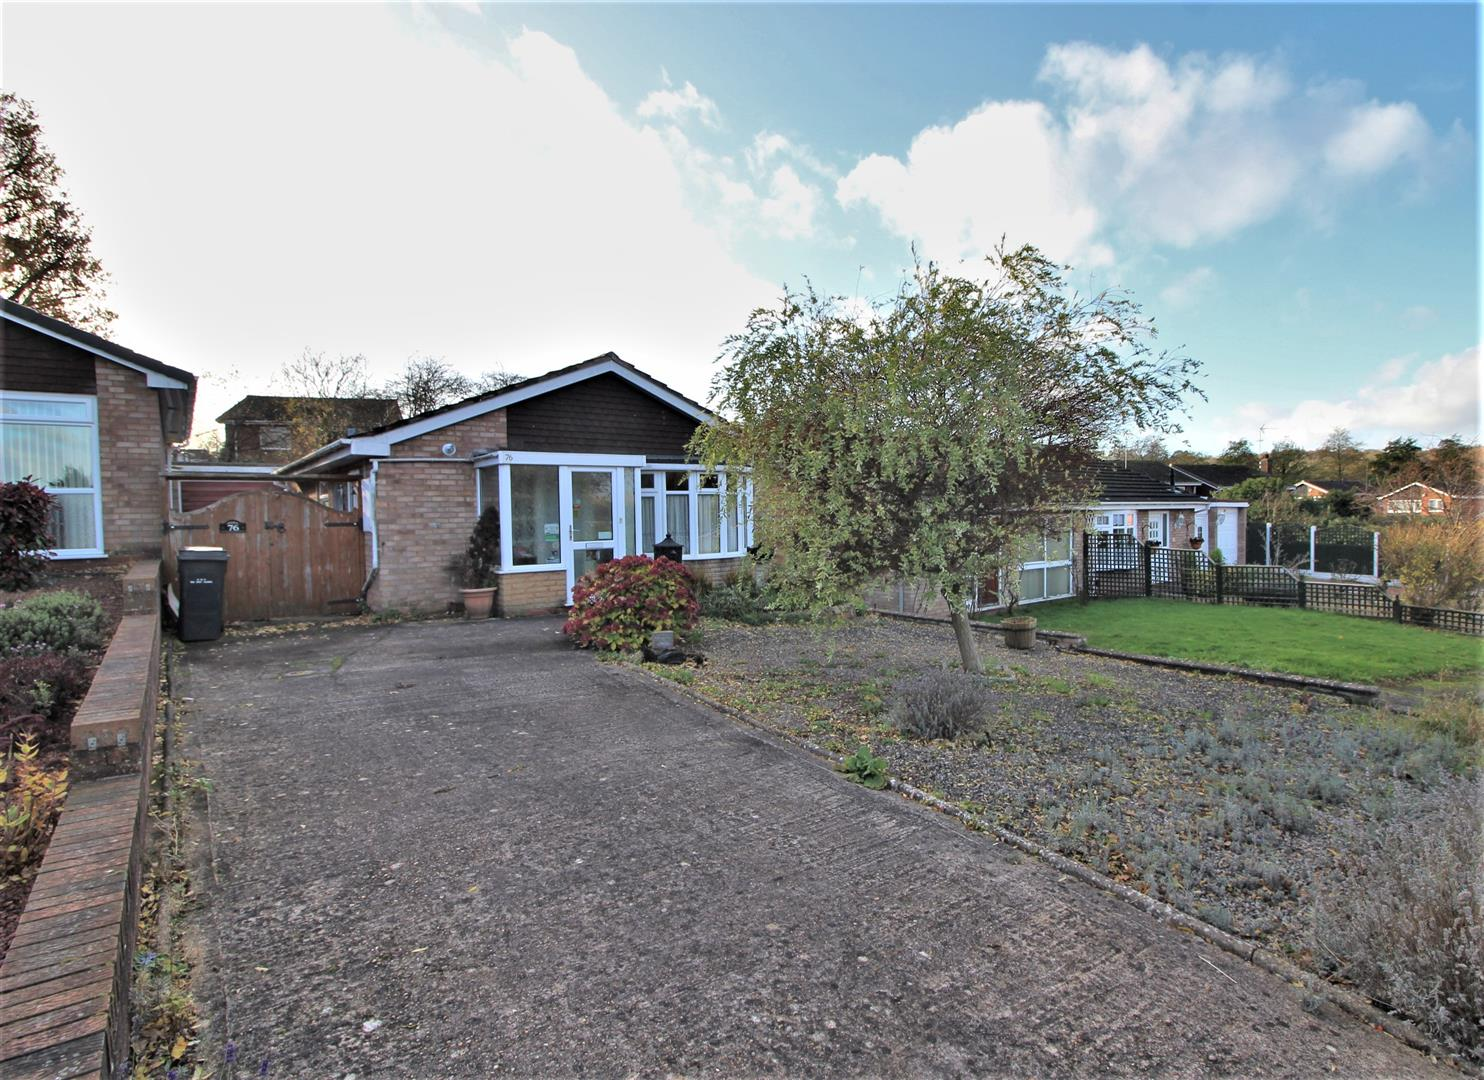 2 Bedrooms Detached Bungalow for sale in Milcote Close, Greenlands, Redditch